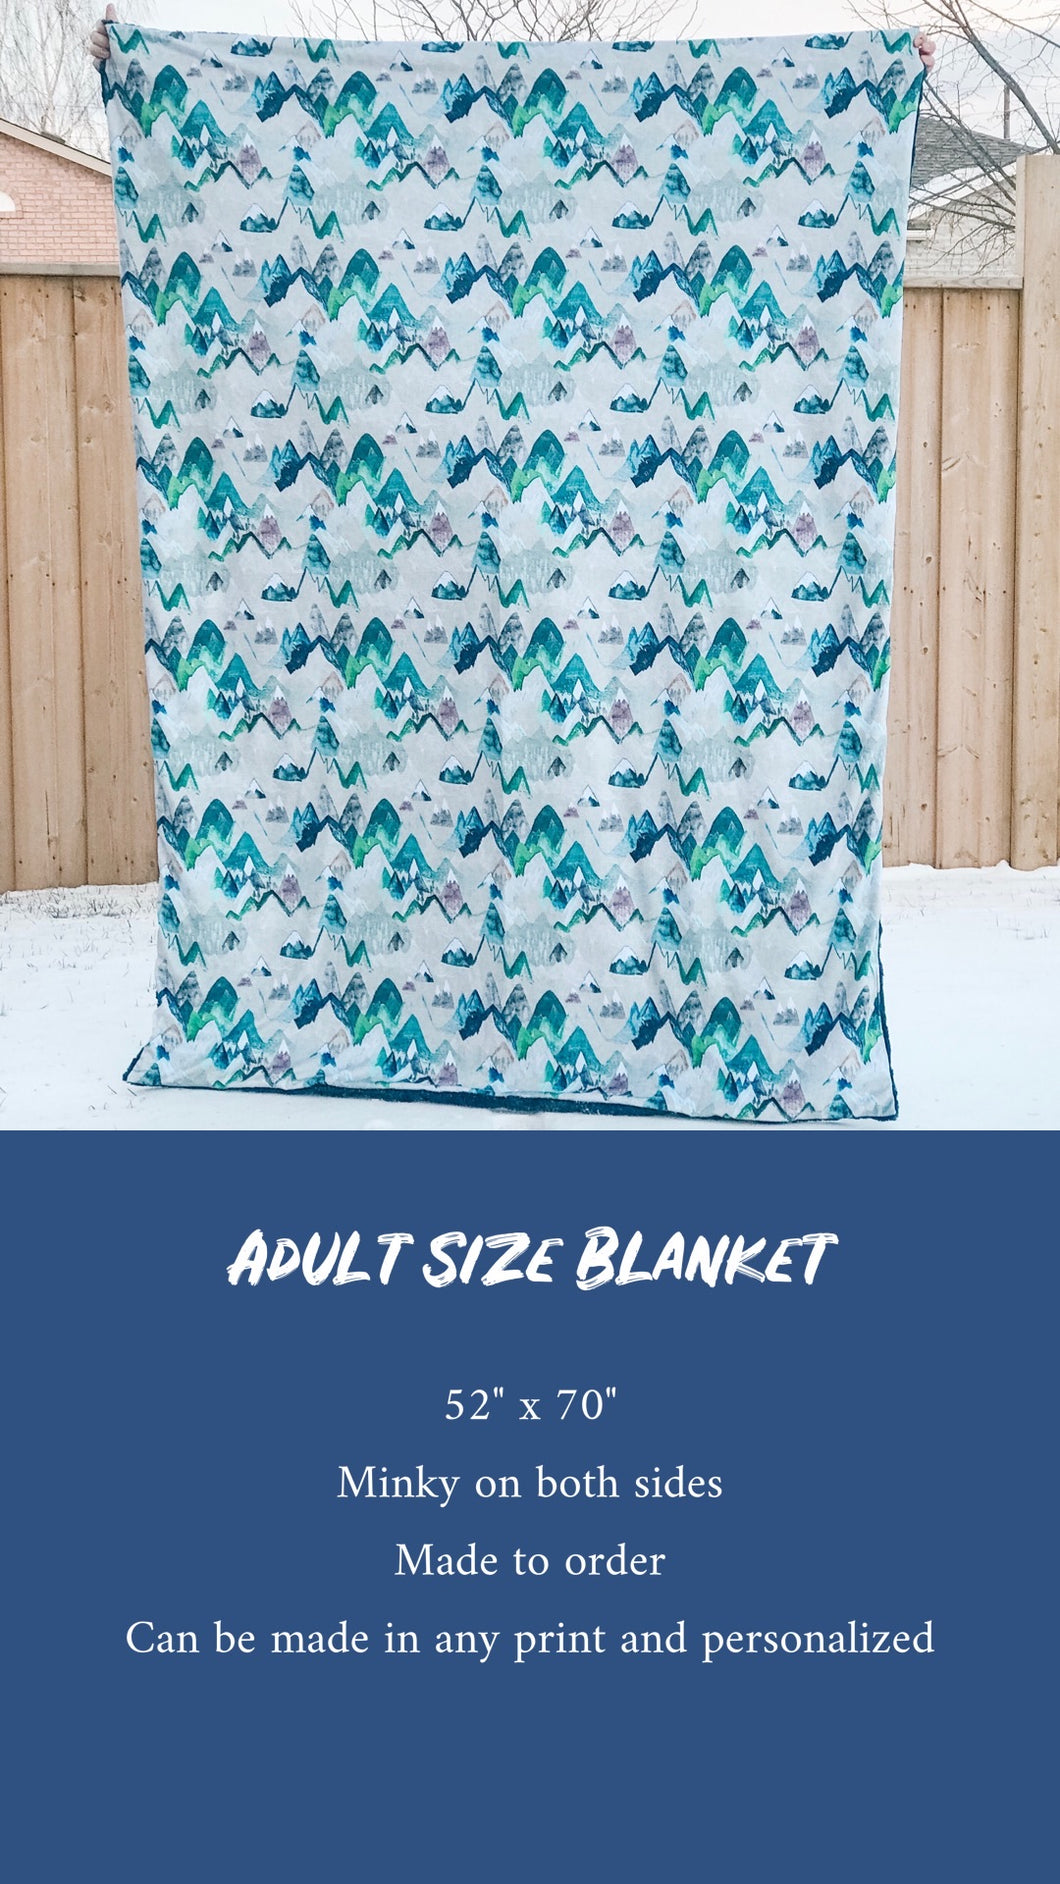 CUSTOM Adult Blanket Size